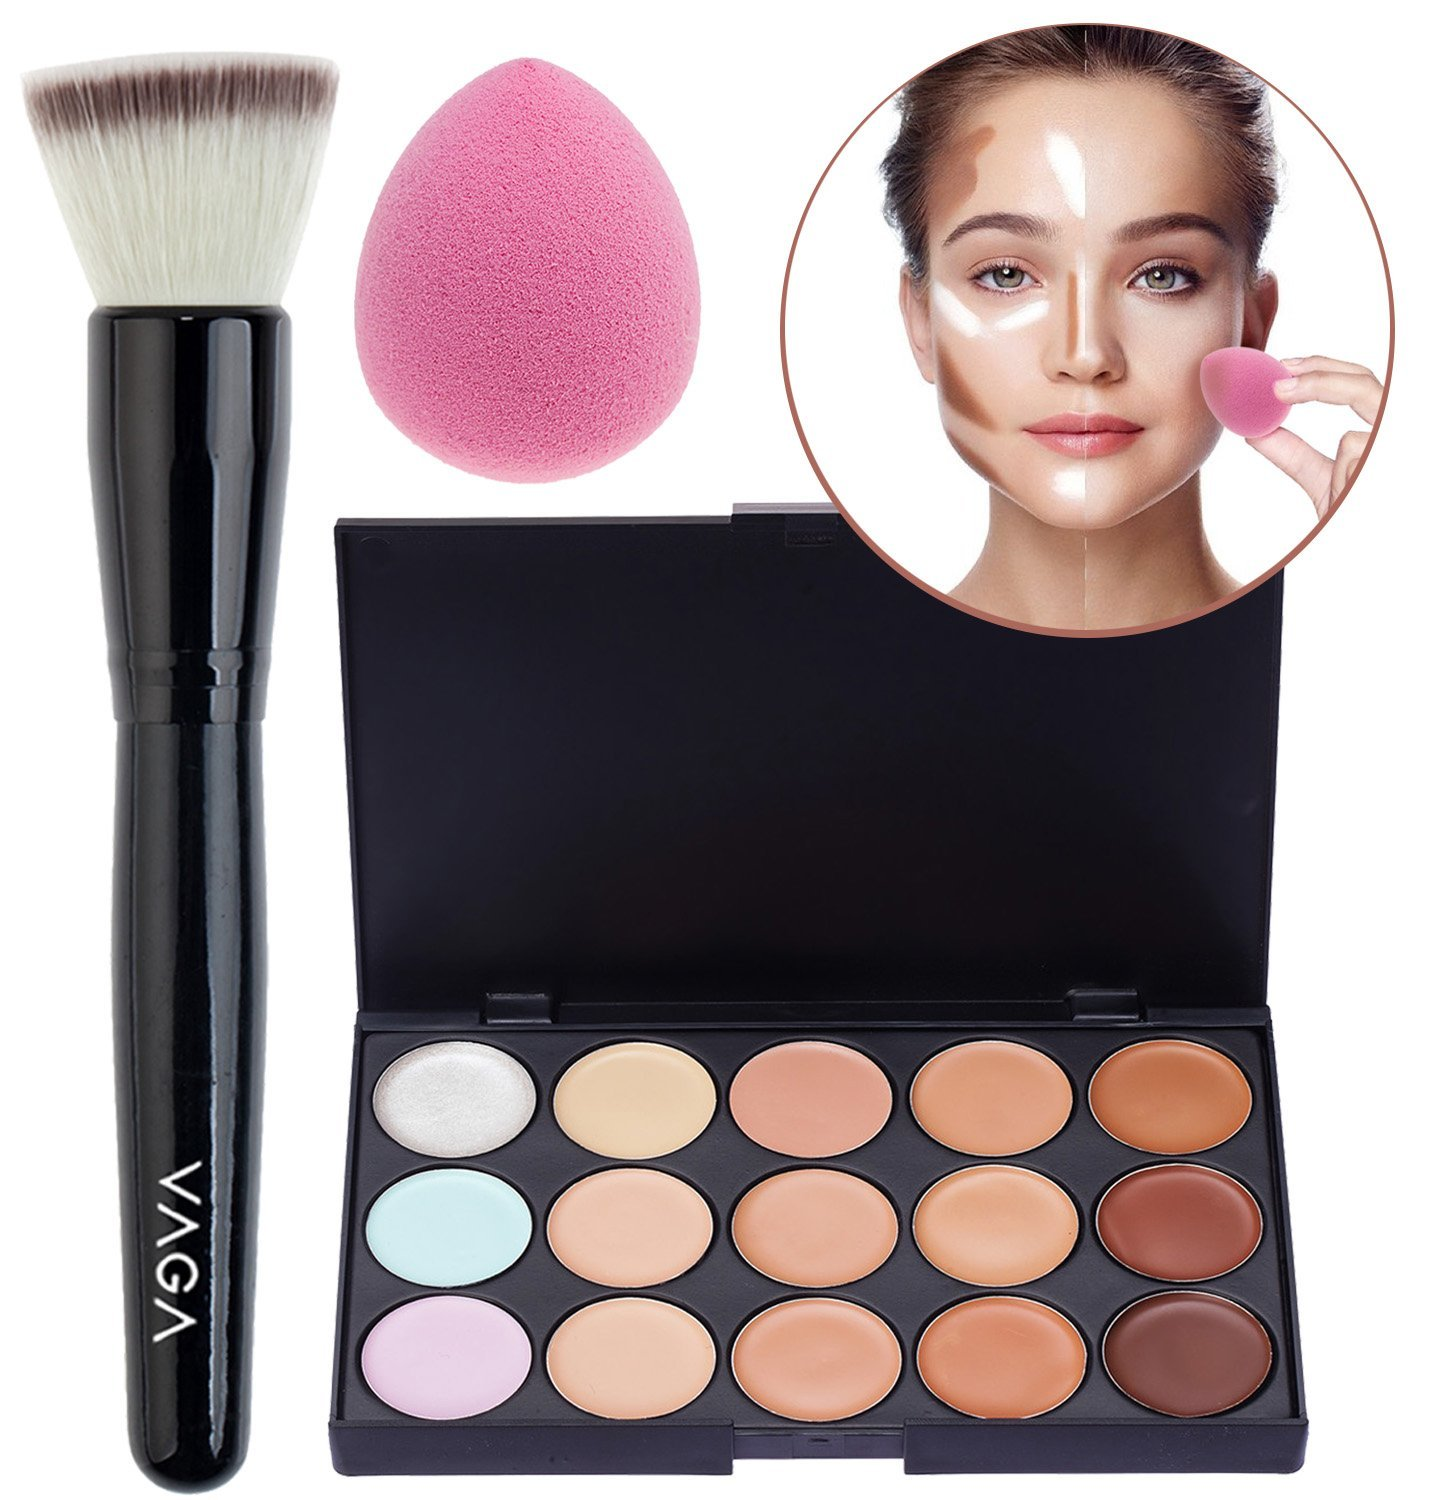 Make Up Beauty Tools and Cosmetics Set / Kit / Lot With Flat Powder Brush / Applicator, 15 Colors / Shades Makeup Concealers / Foundations Palette and Pink Teardrop Shaped Application Sponge